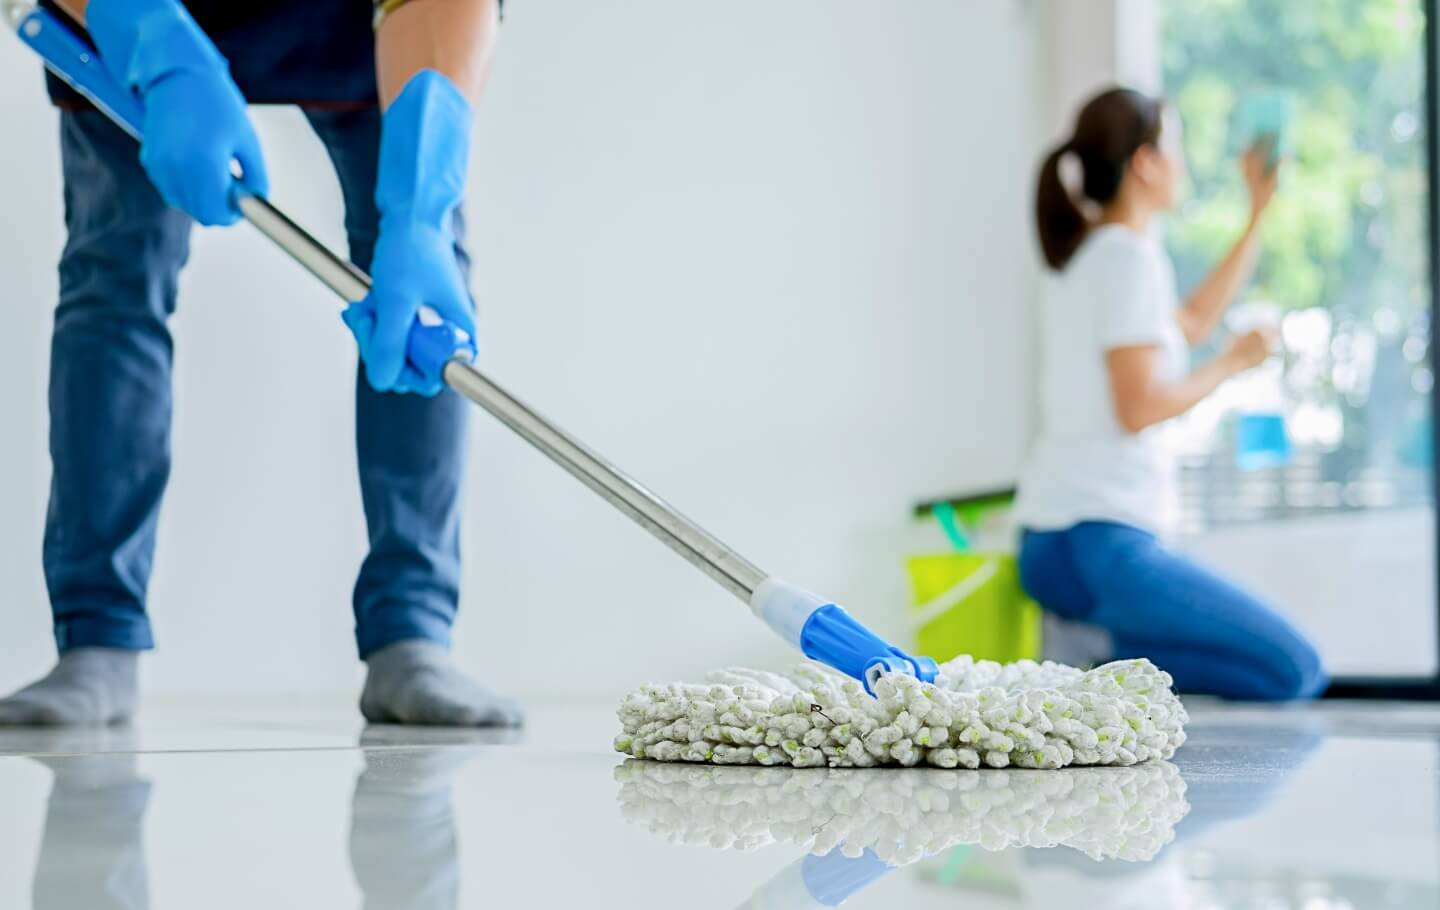 Cleaners Cleaning Floor and Window